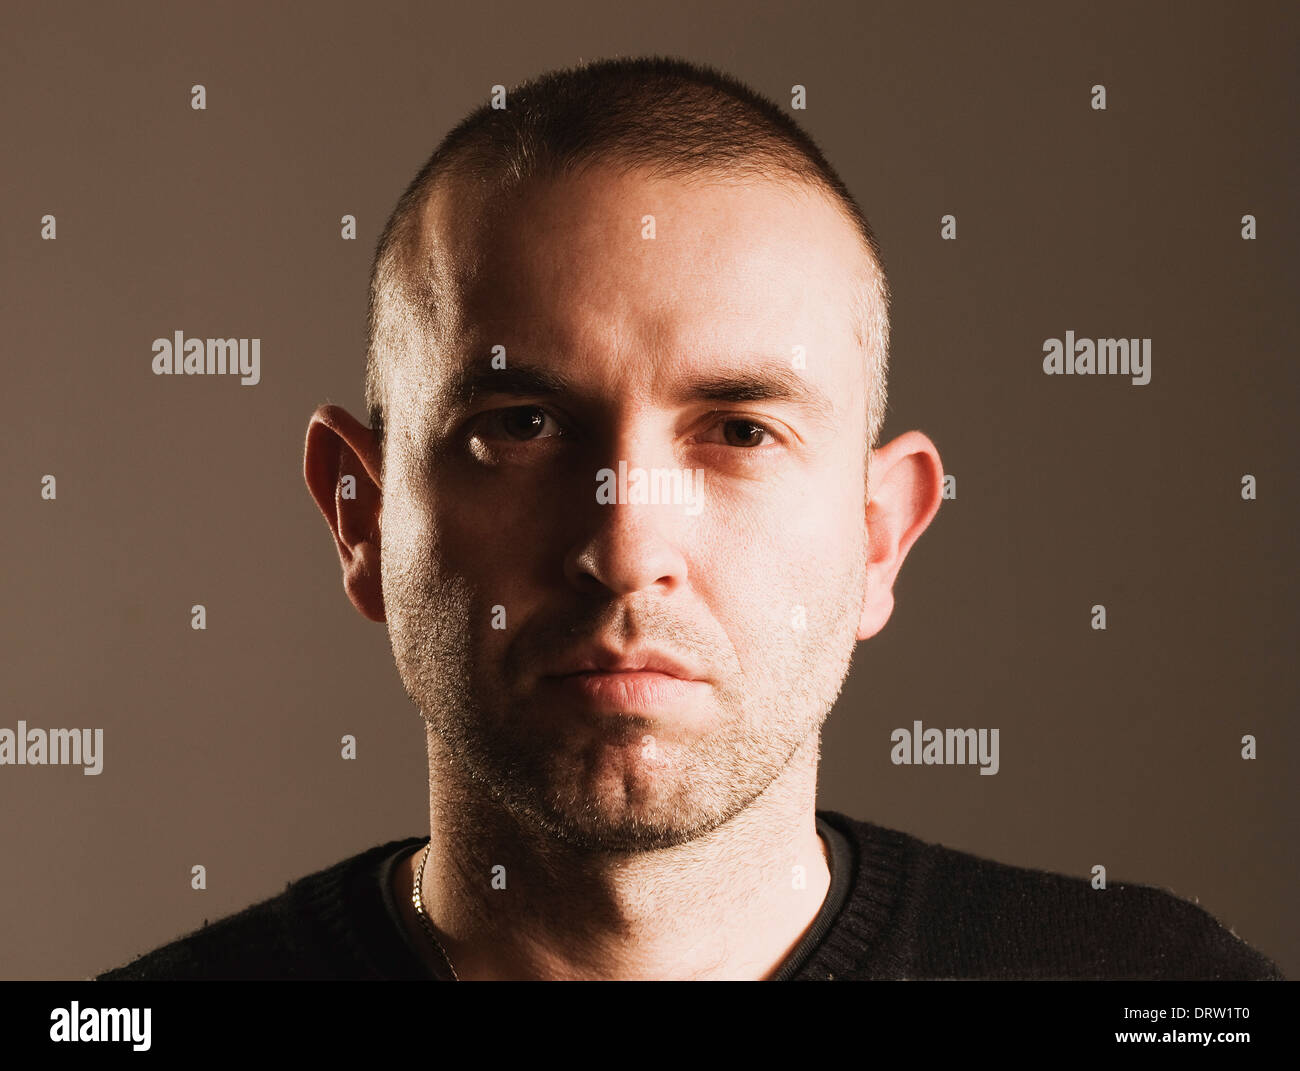 Man with seriously expression, looking and camera and isolated over dark background Stock Photo